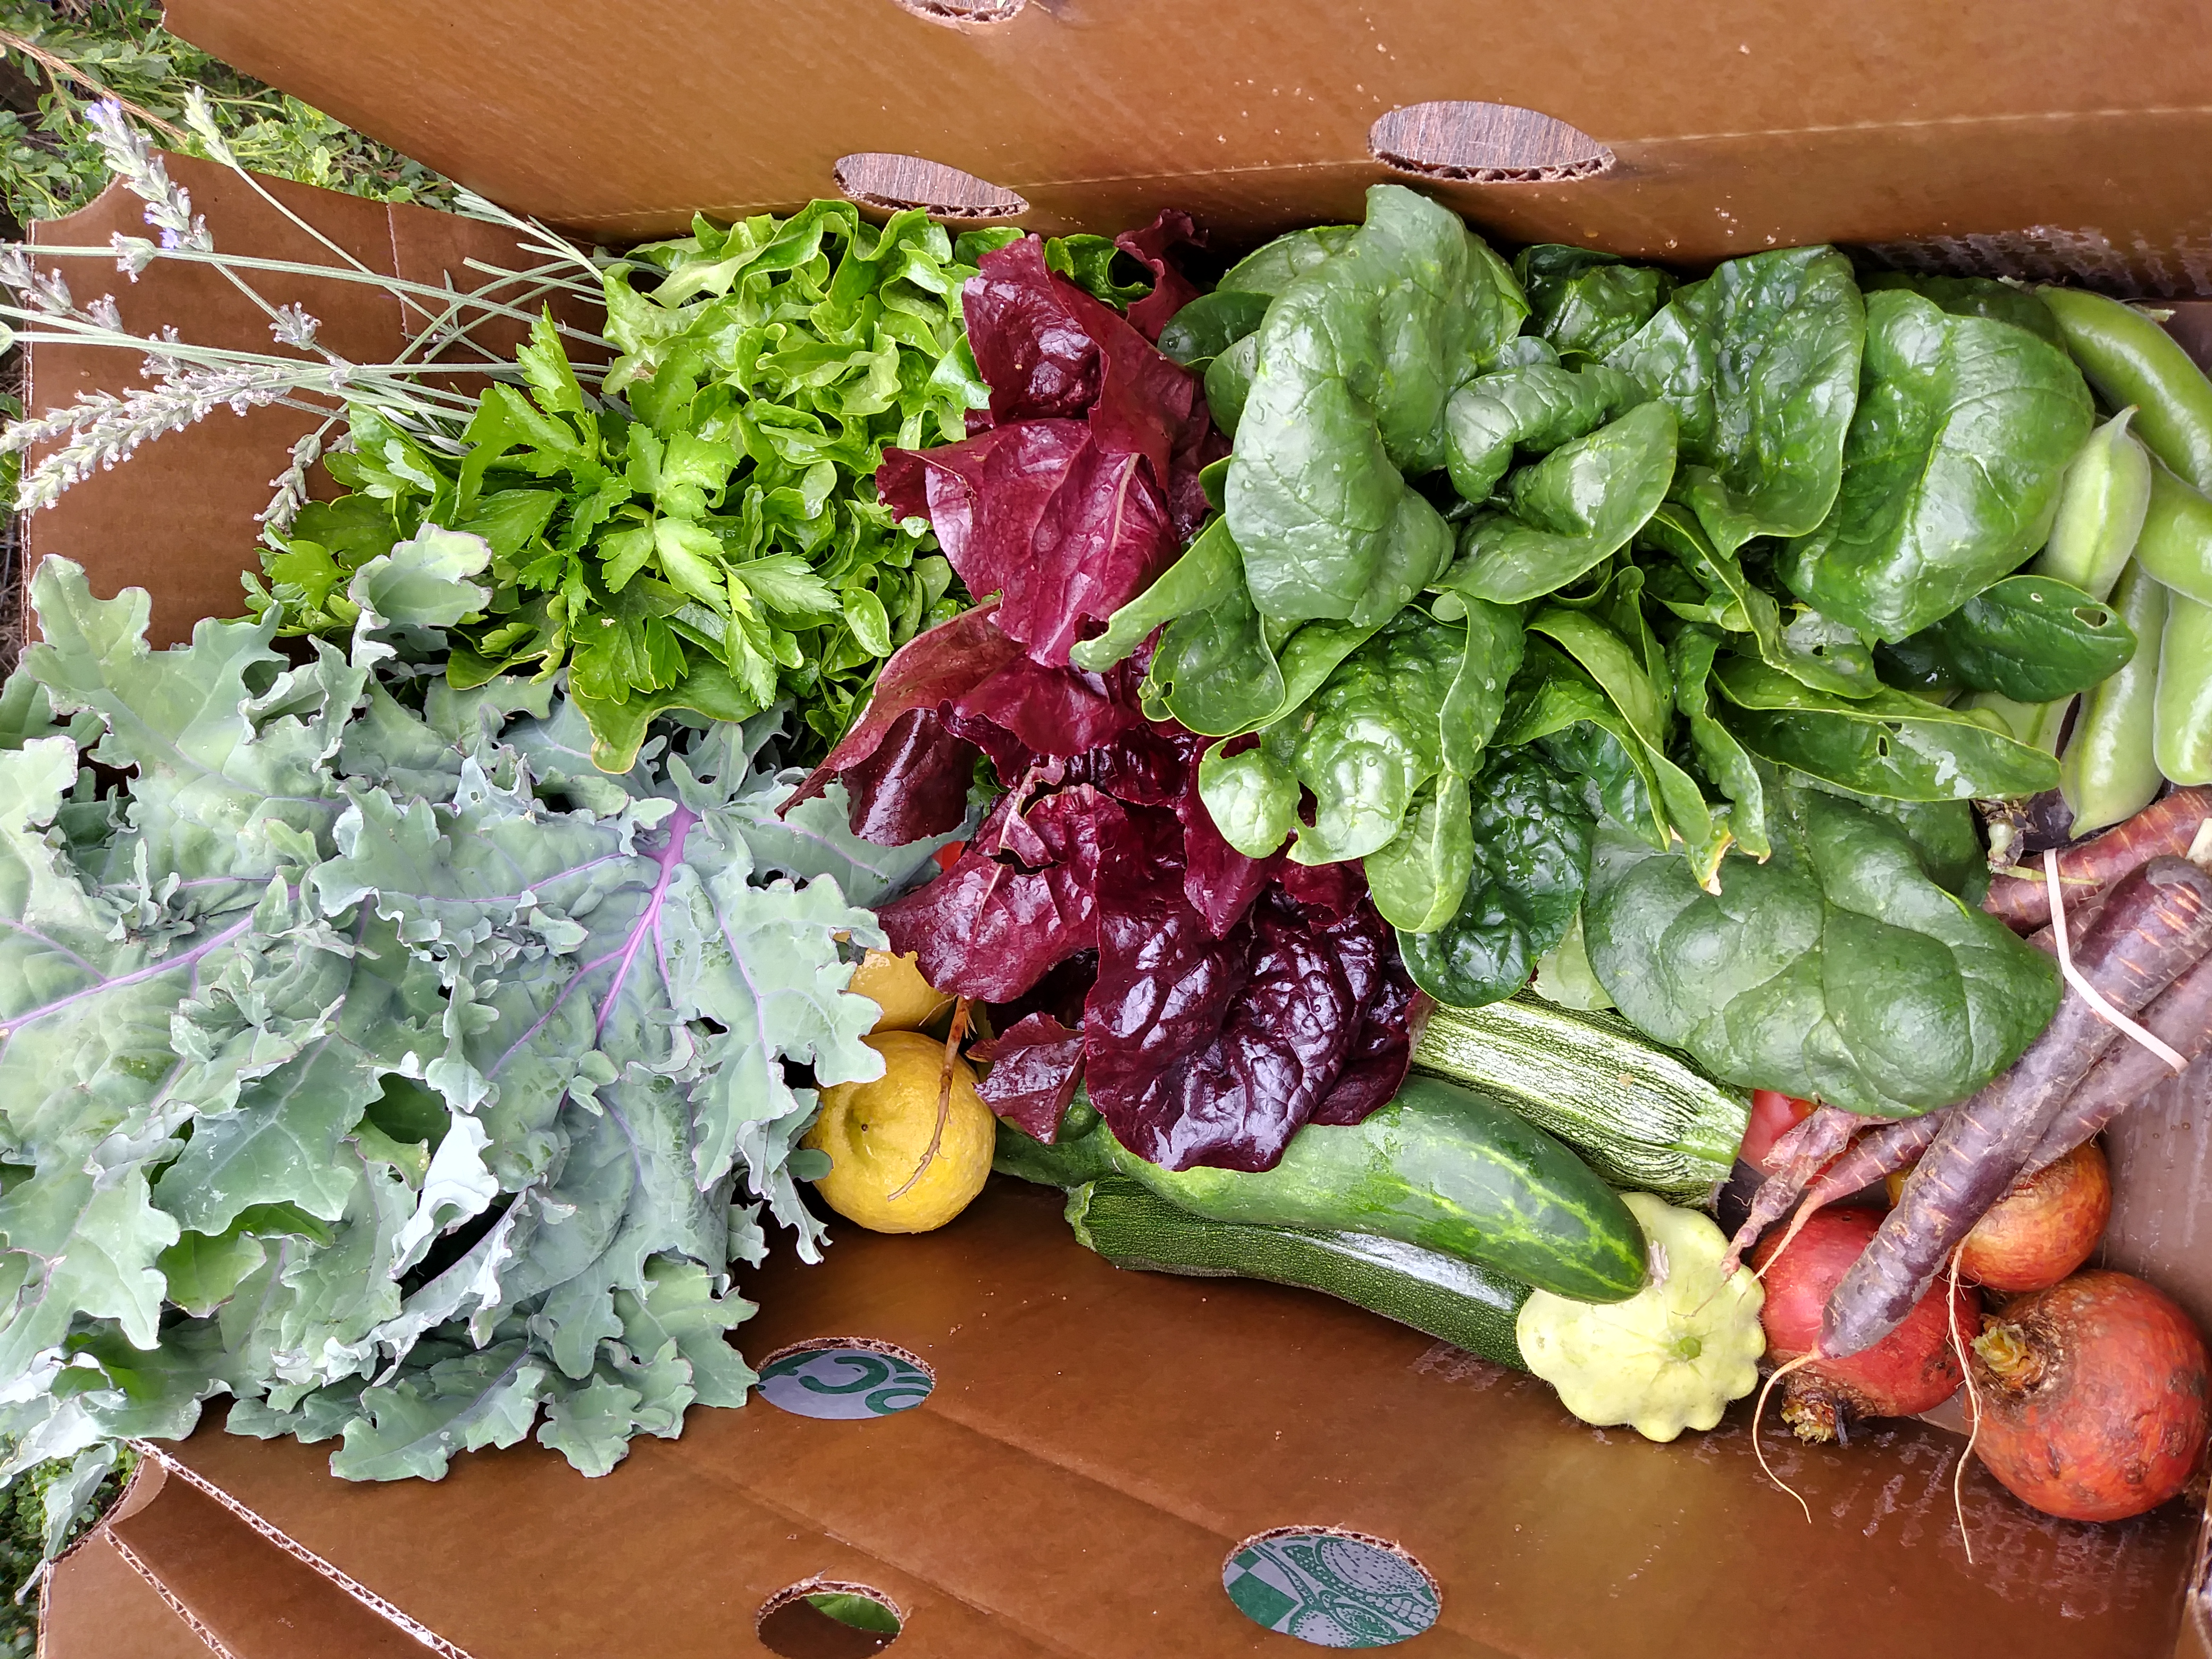 An overflowing box of fresh produce for CSA subscribers.